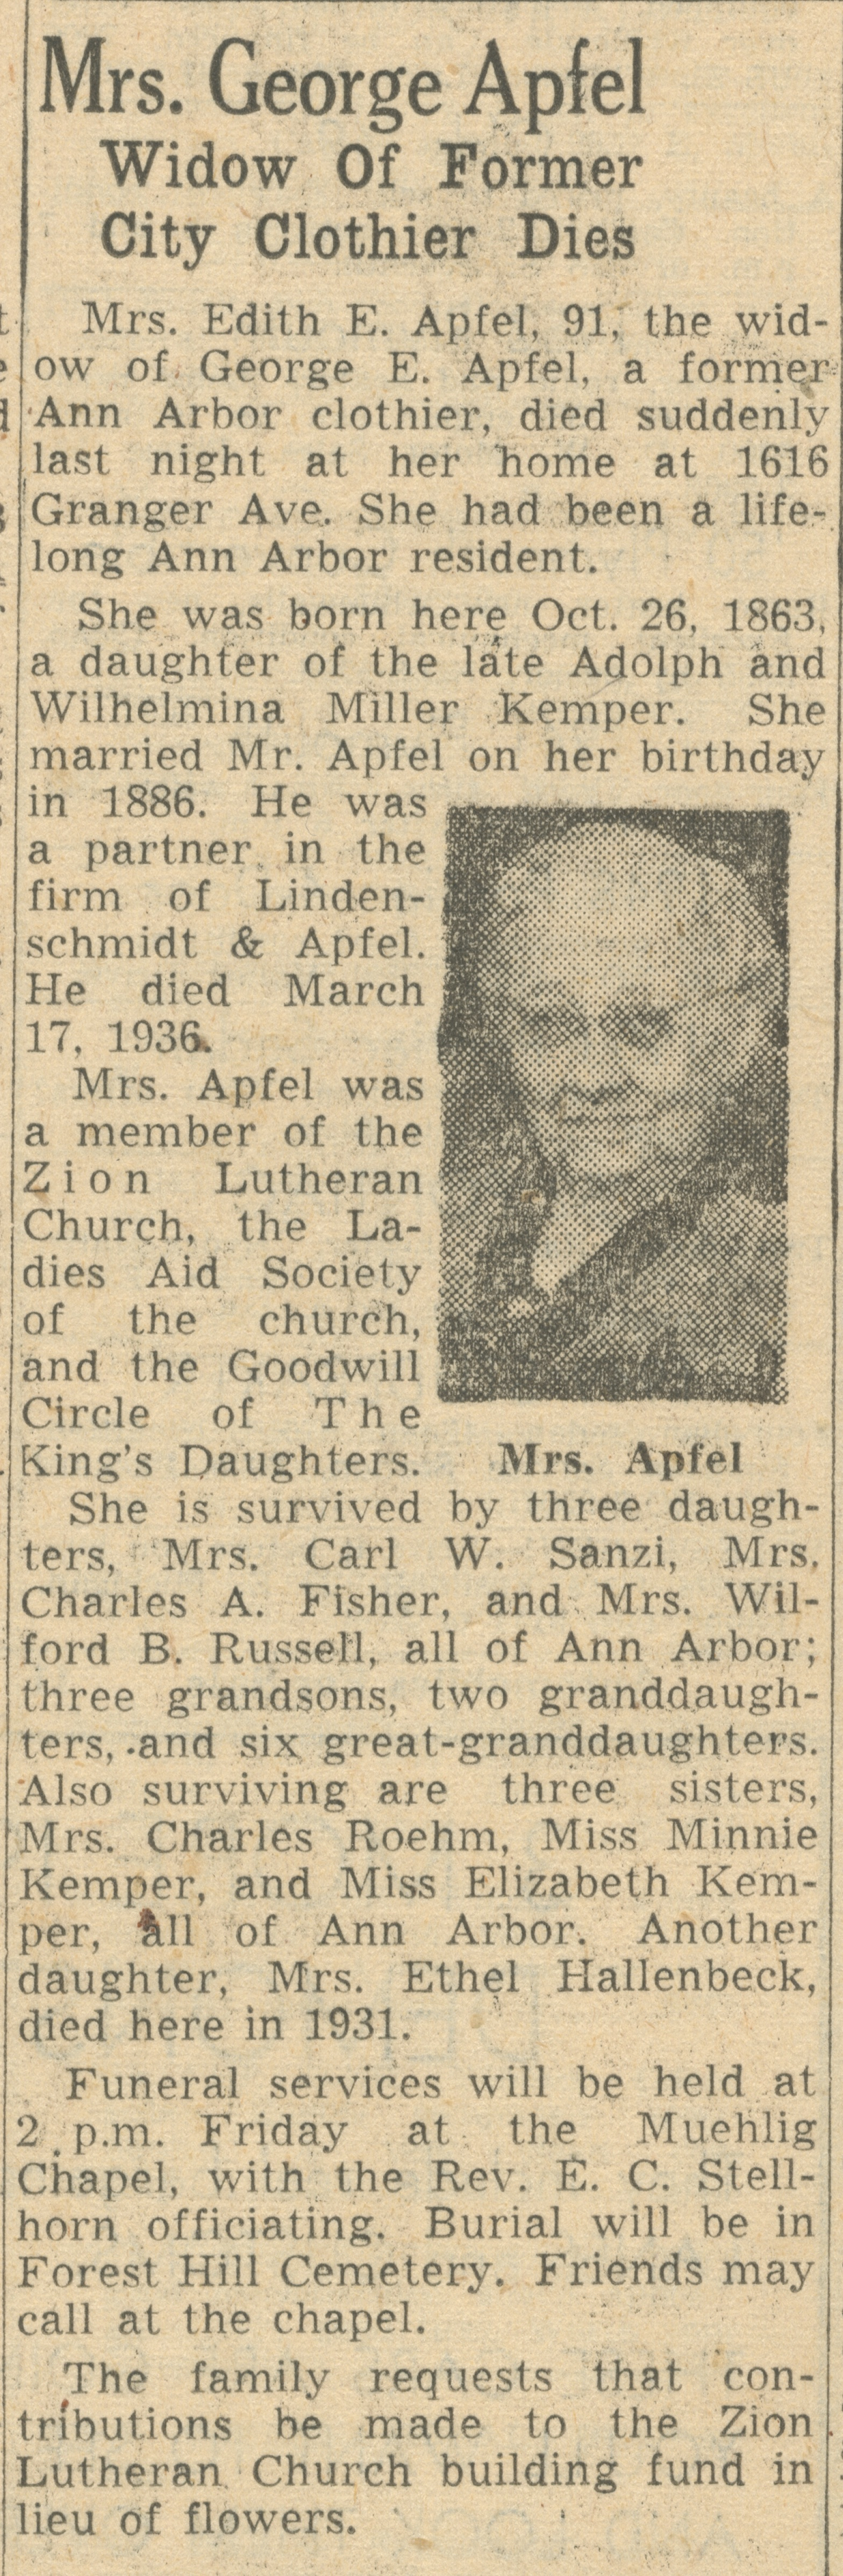 Mrs. George Apfel image